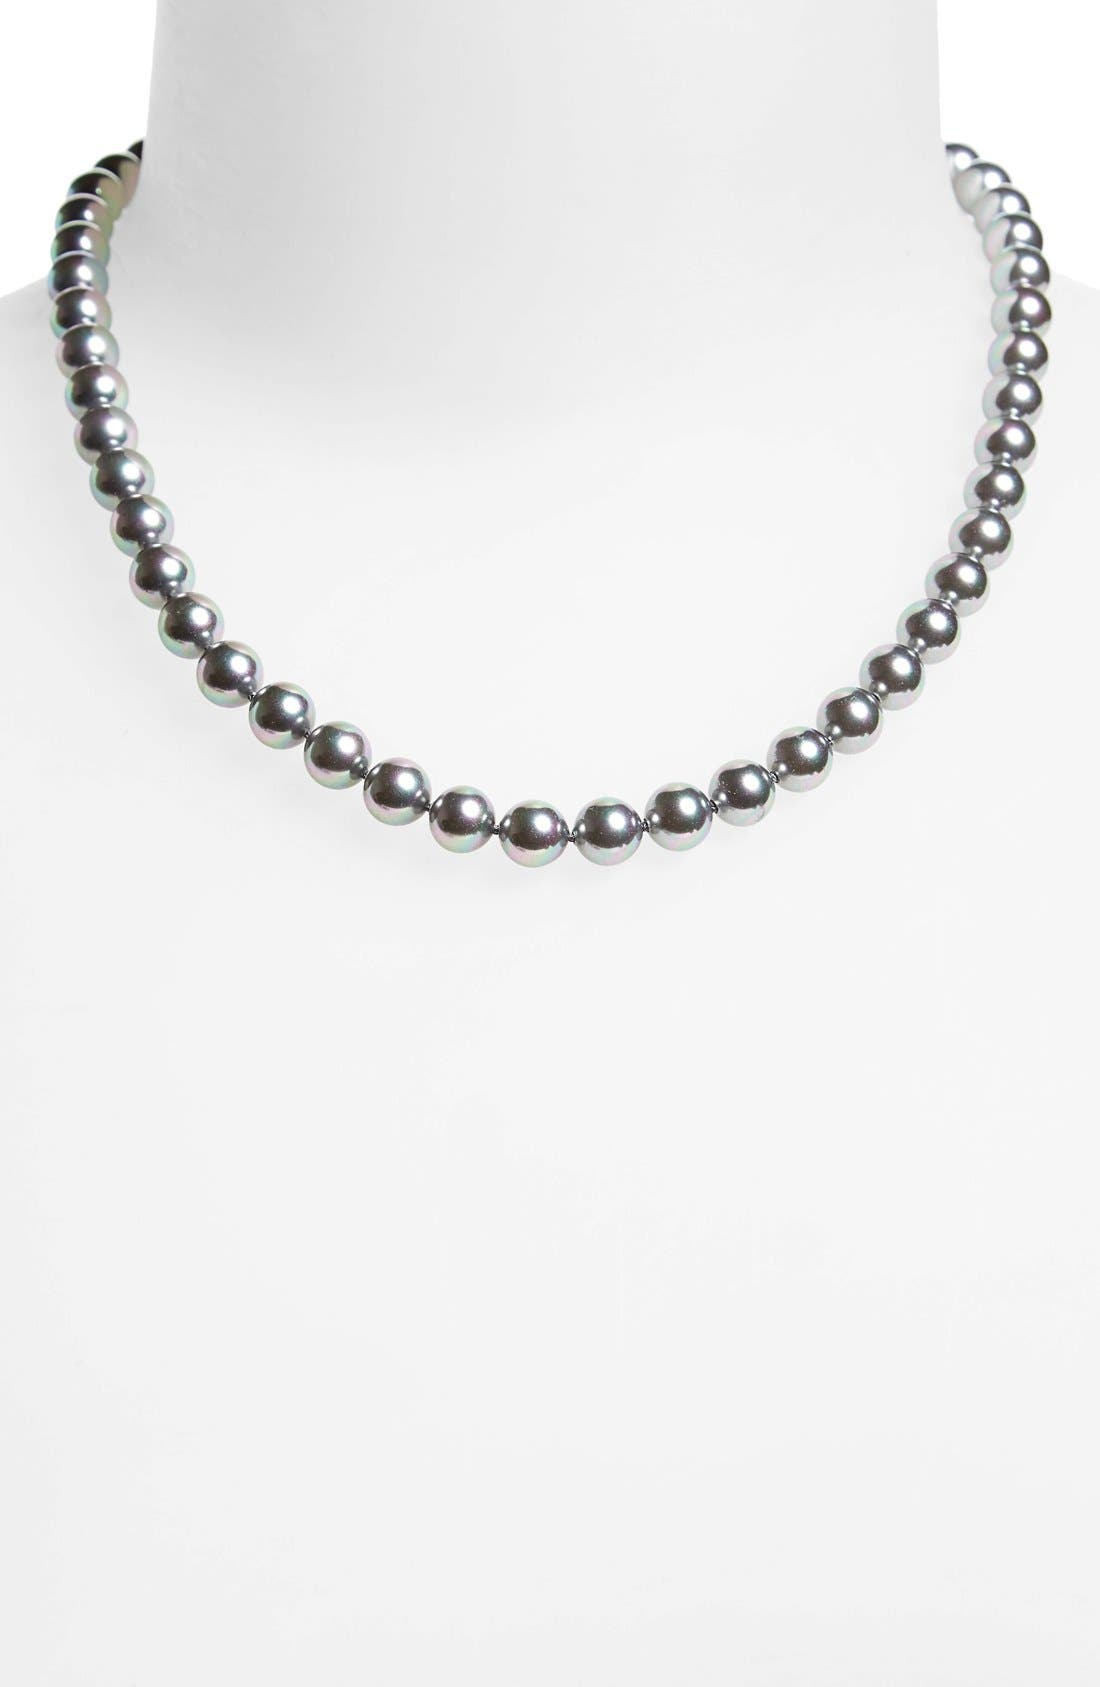 7mm Round Simulated Pearl Strand Necklace,                             Alternate thumbnail 2, color,                             021